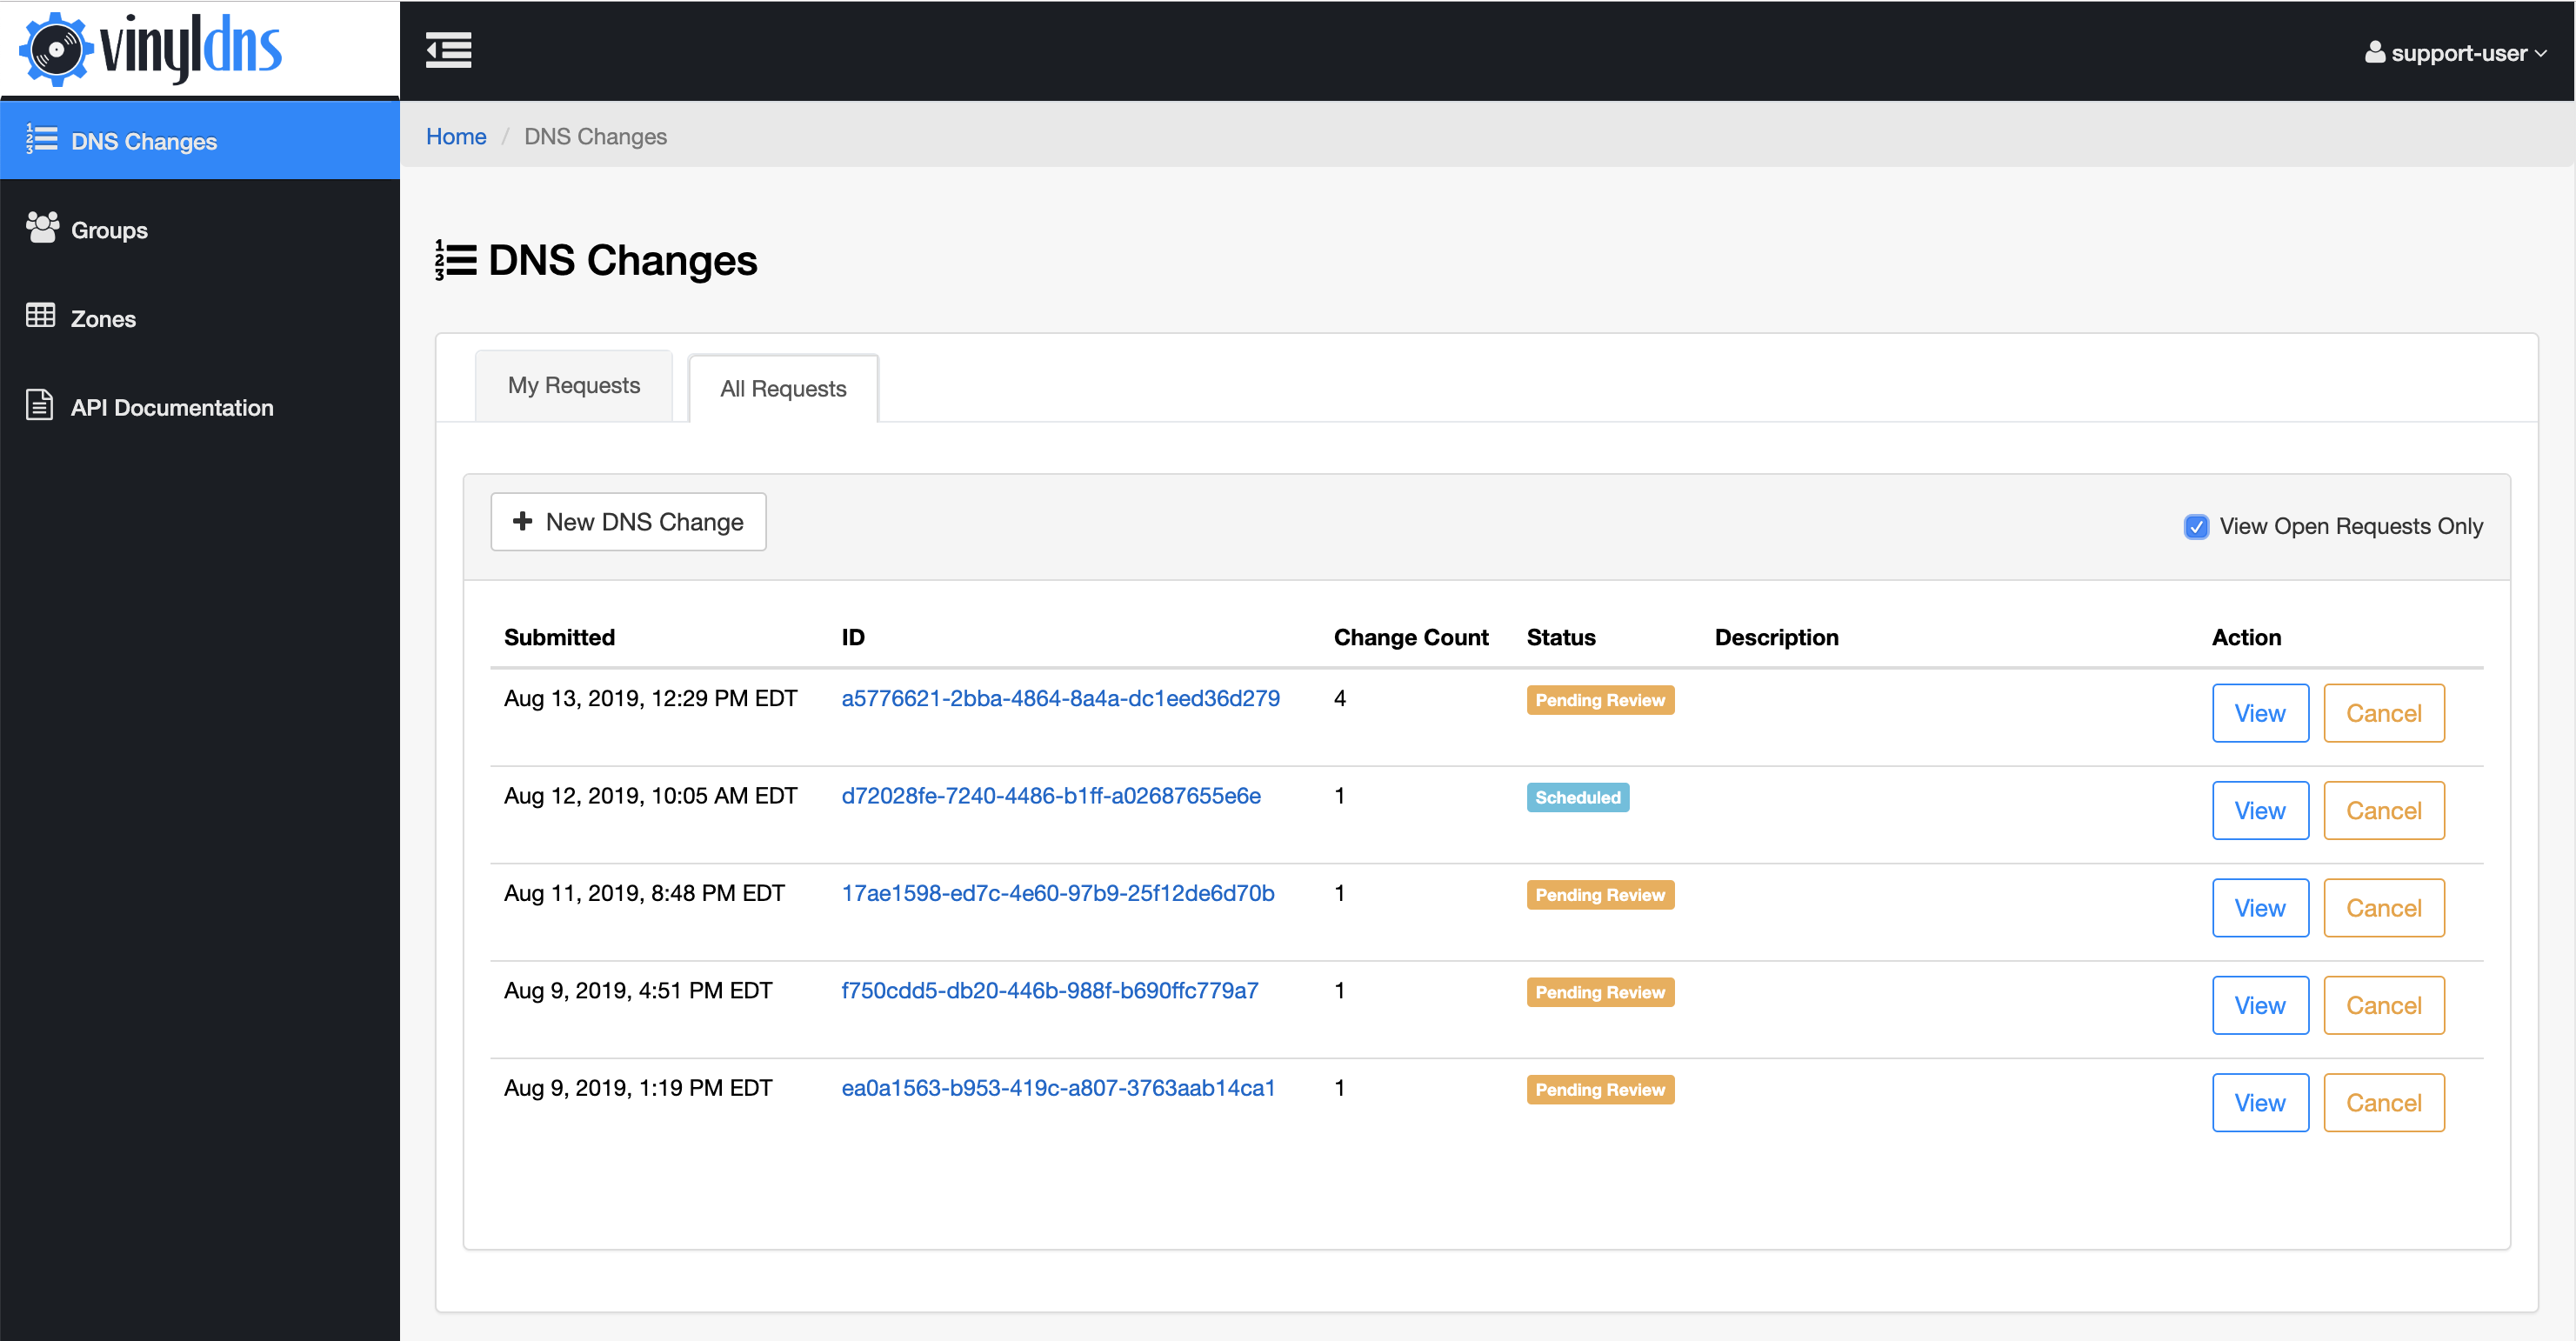 DNS Changes admin view